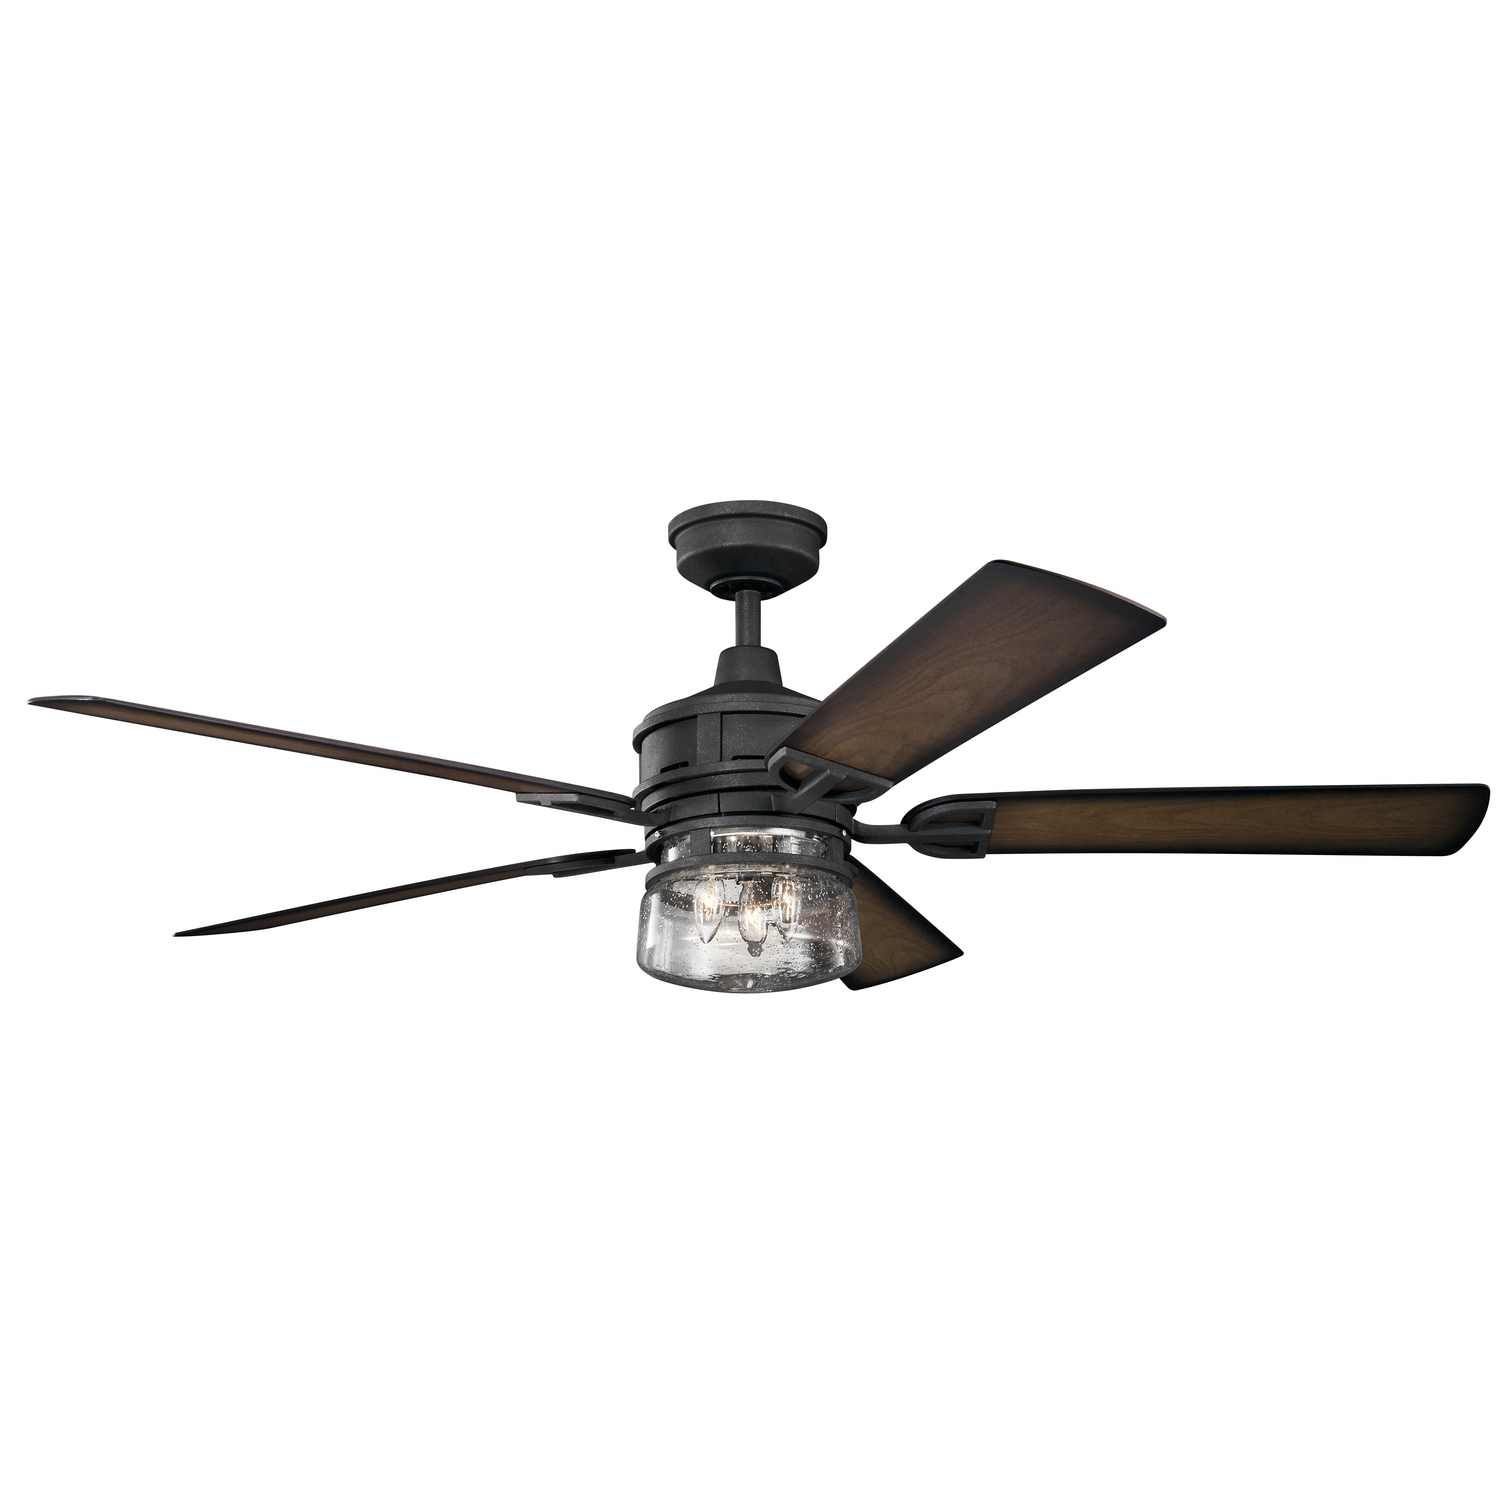 60 inchCeiling Fan from the Patio collection by Kichler 310140DBK